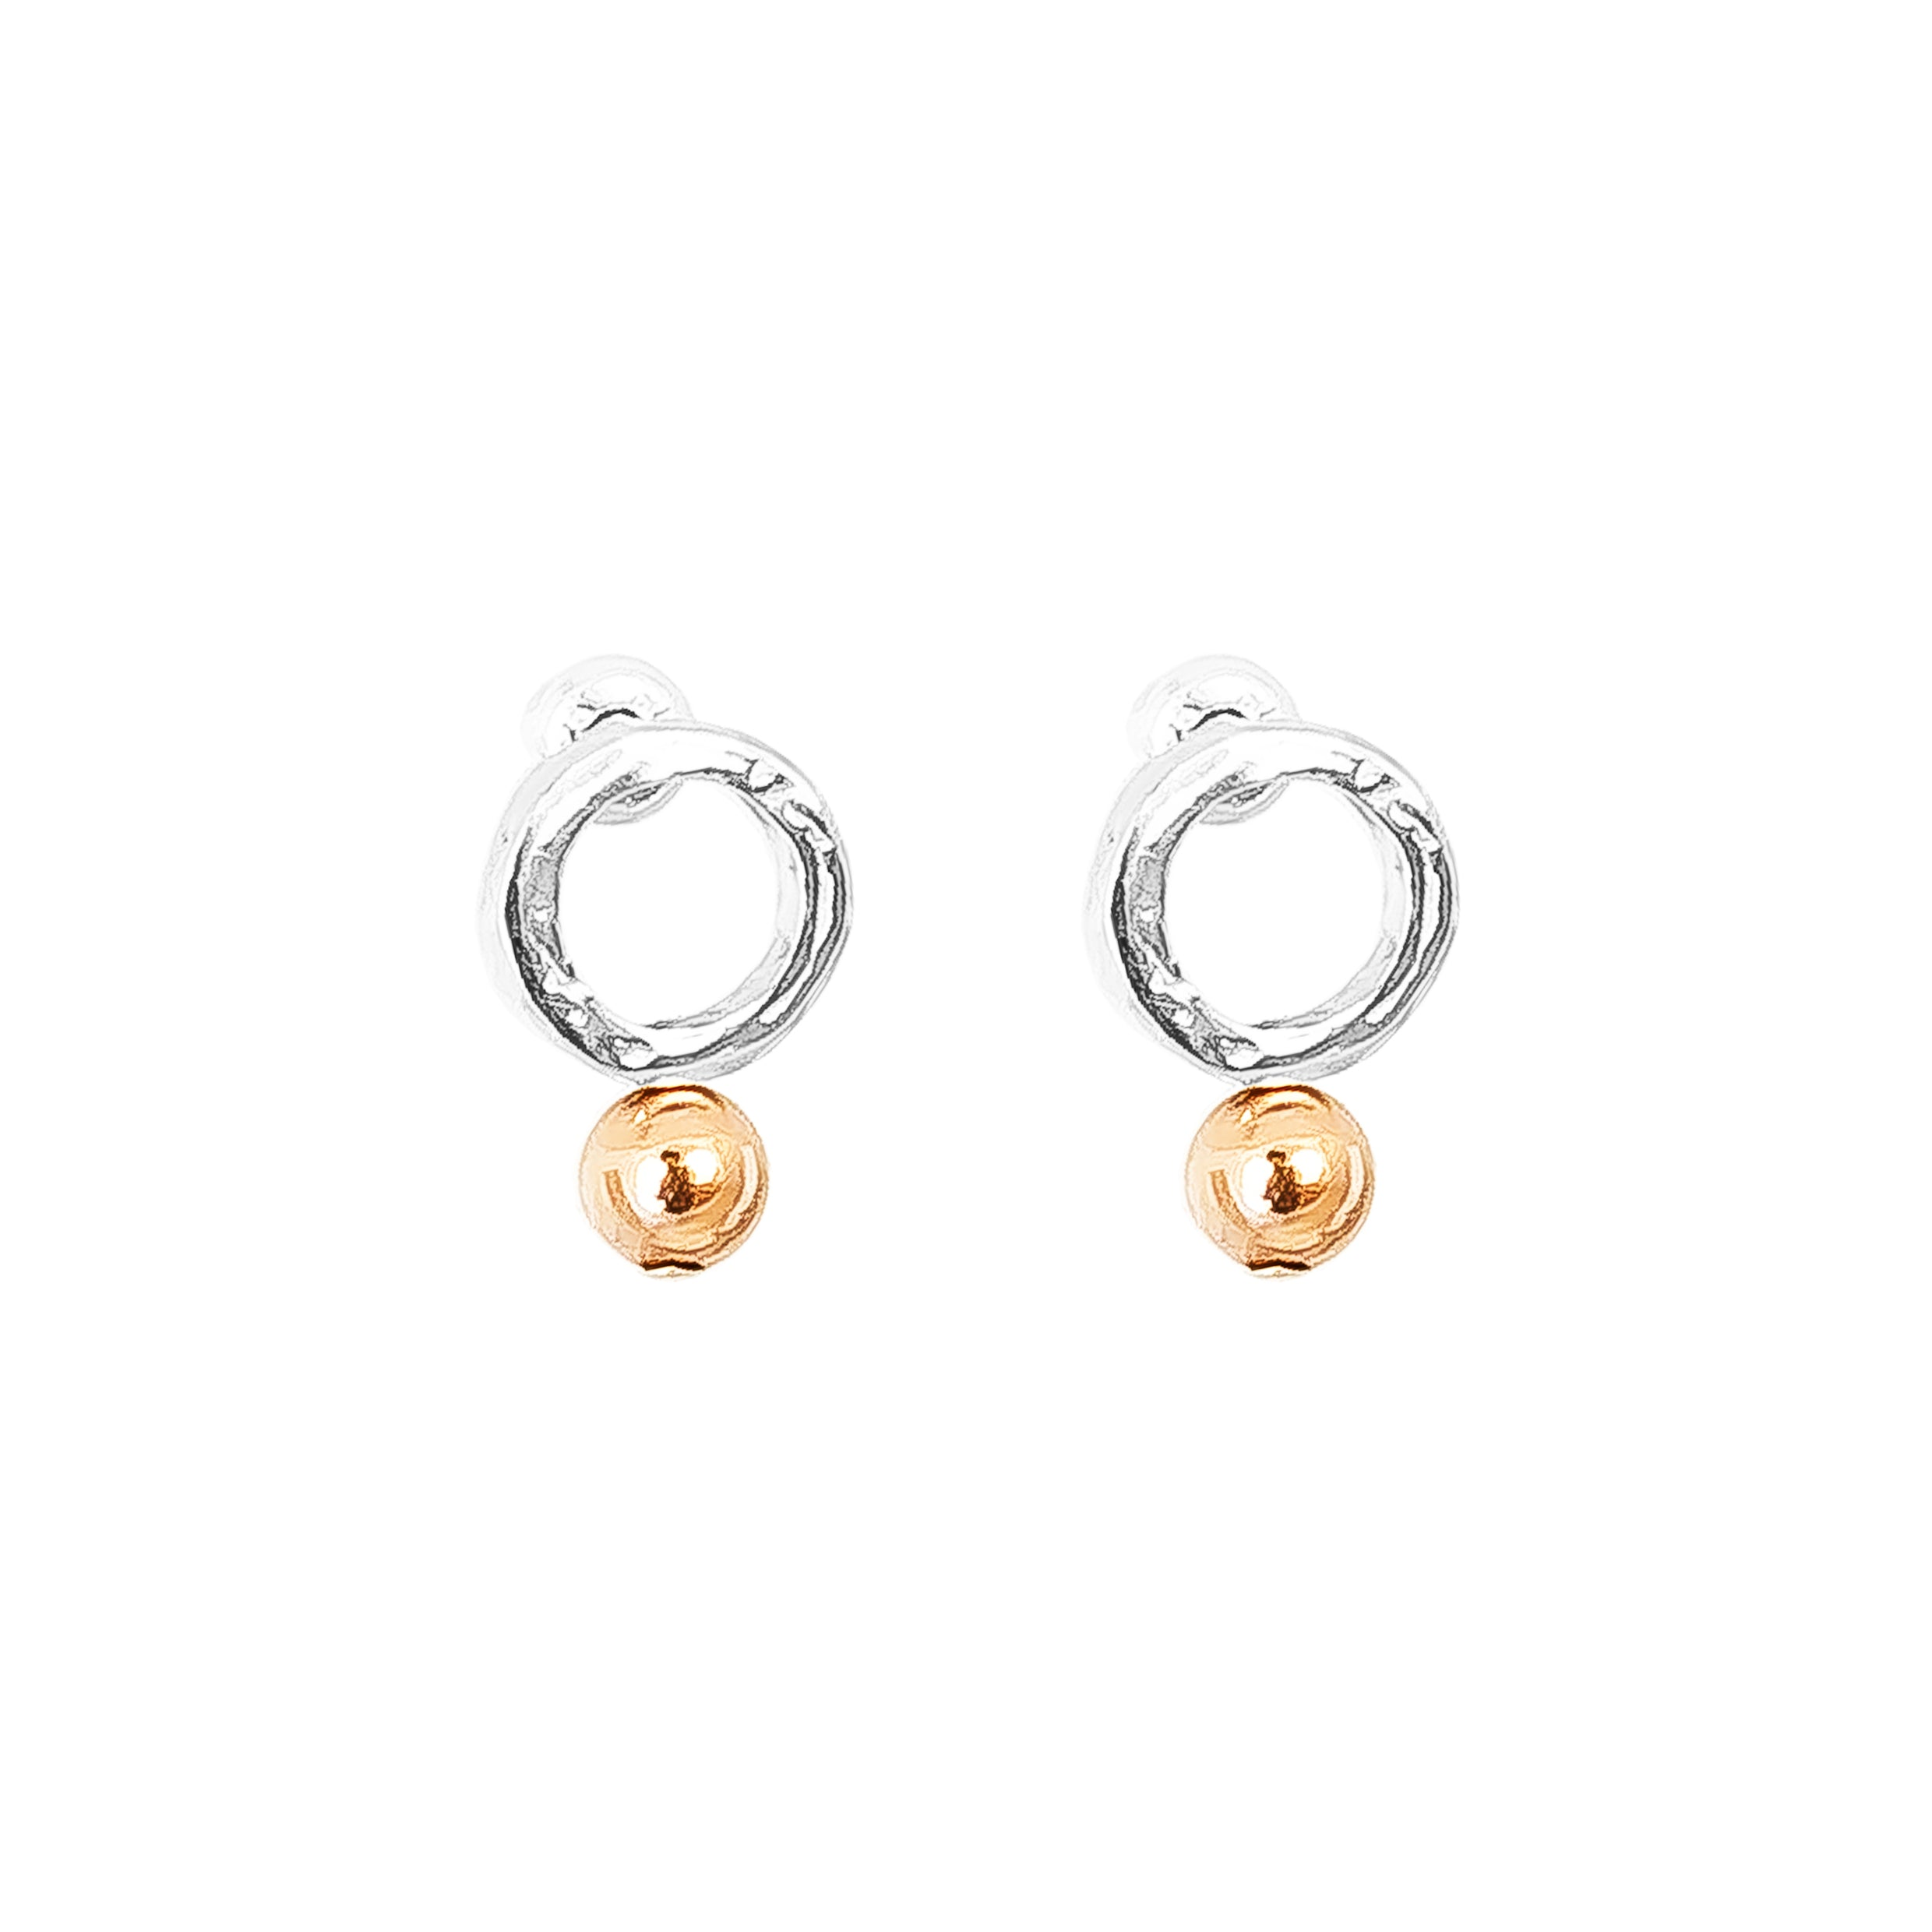 Radison Fine Feature Stud Earrings | Polished Rose Detail